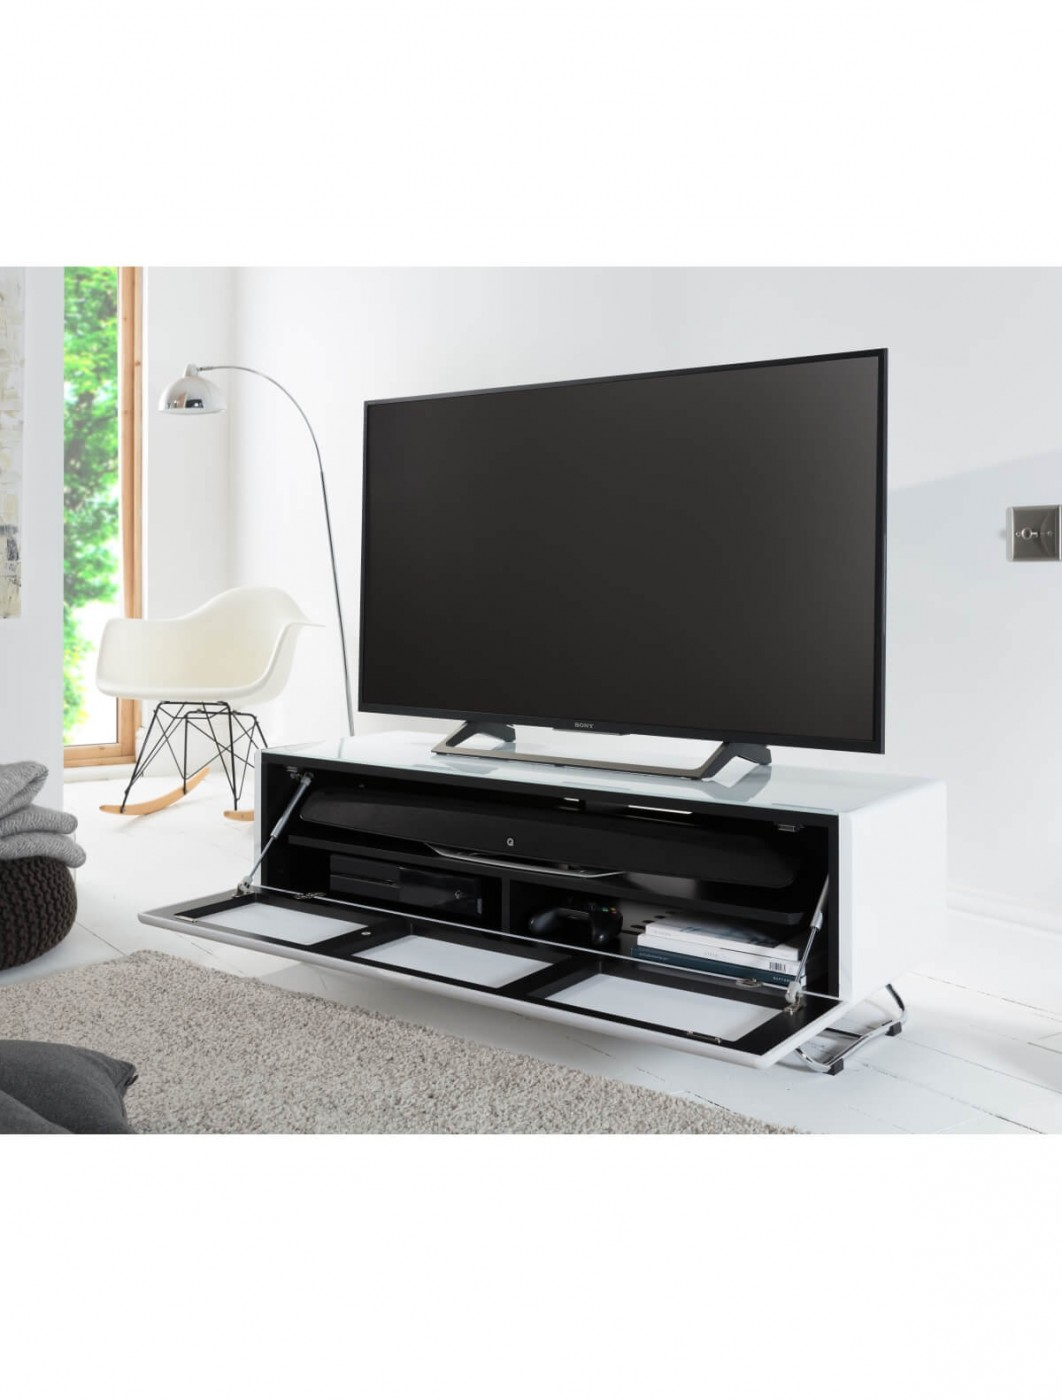 TV Stands - Chromium Concept 1200mm White TV Stand CRO2-1200CPT-WH